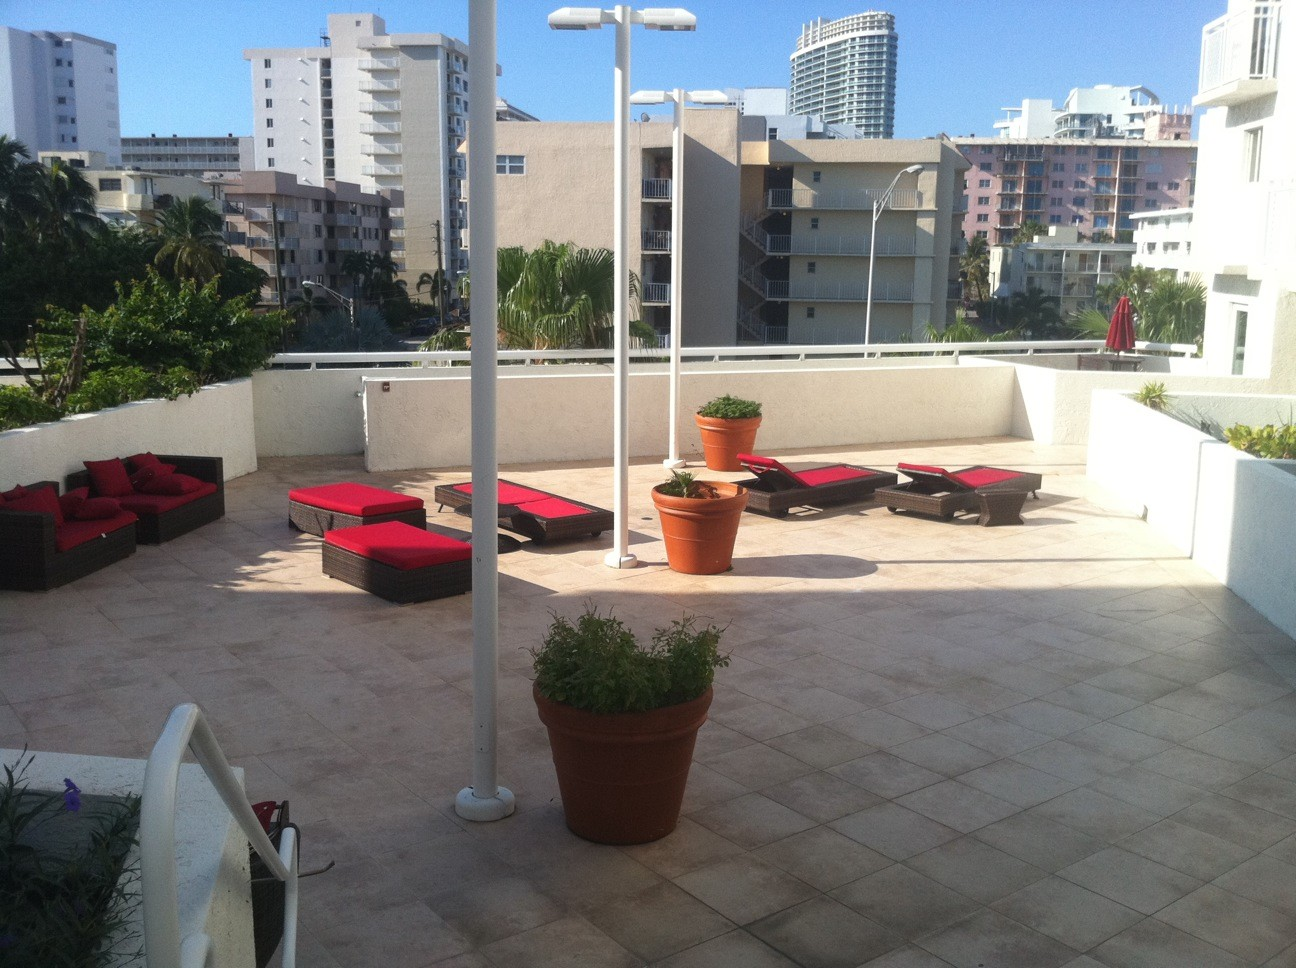 Plant Professionals rooftop patio spaces